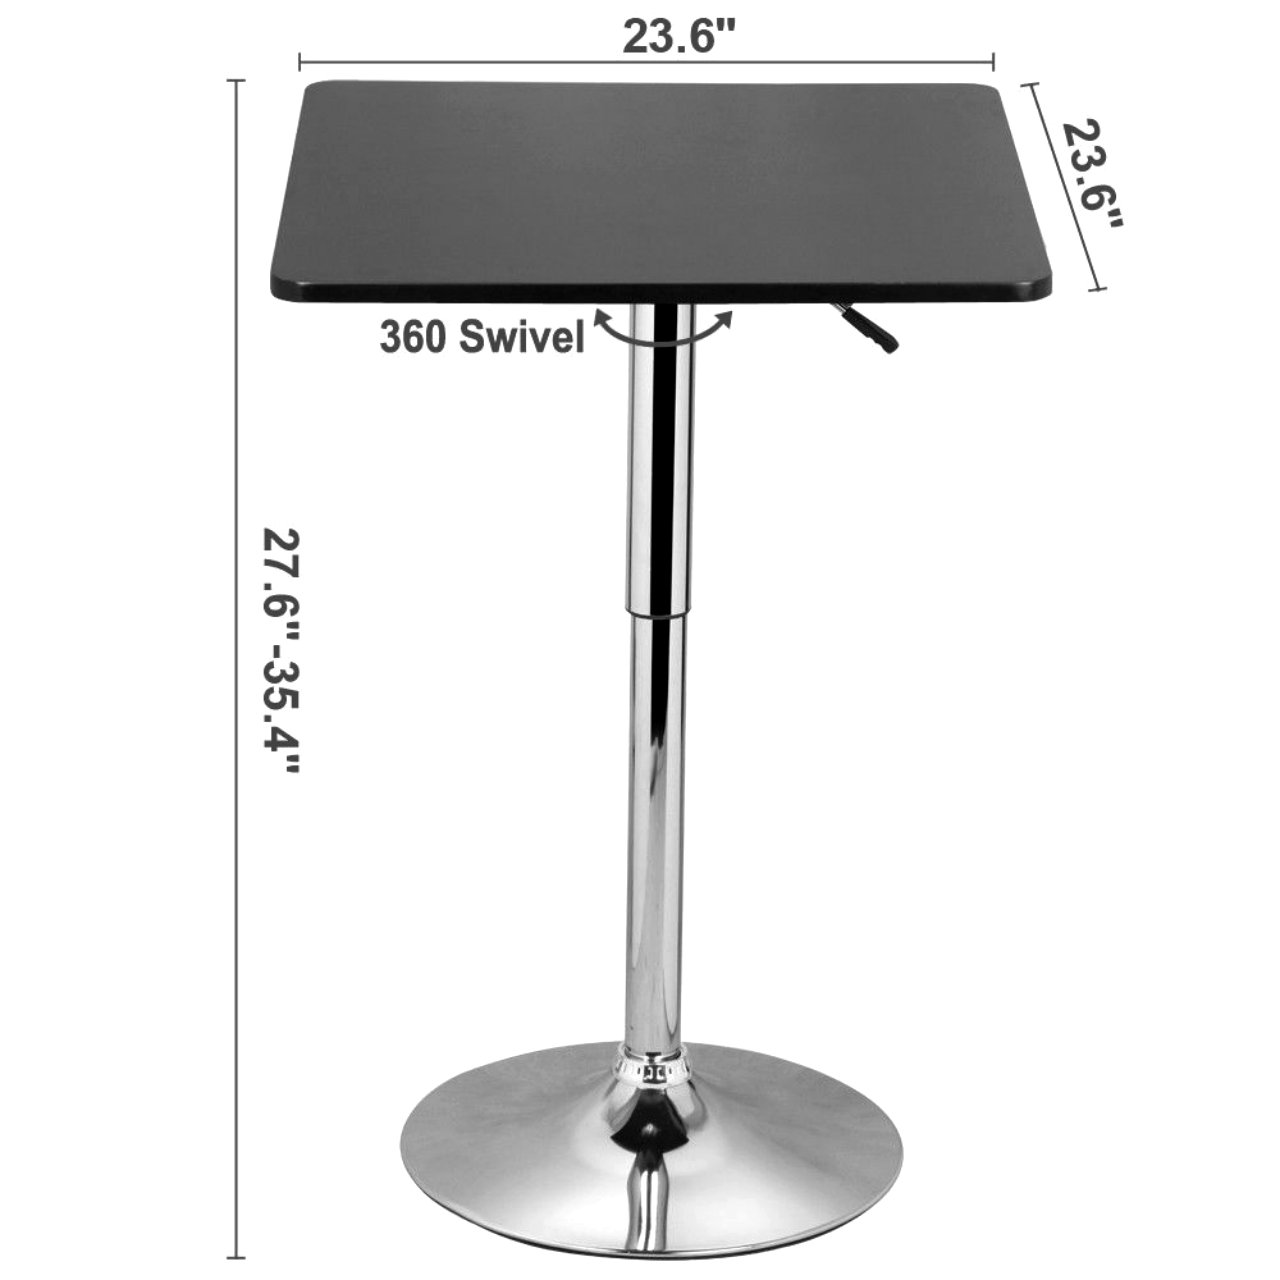 Modern Adjustable 360 Degree Swivel Counter Table 66Lb Capacity Hydraulic Lift Square Bar Table Black #657